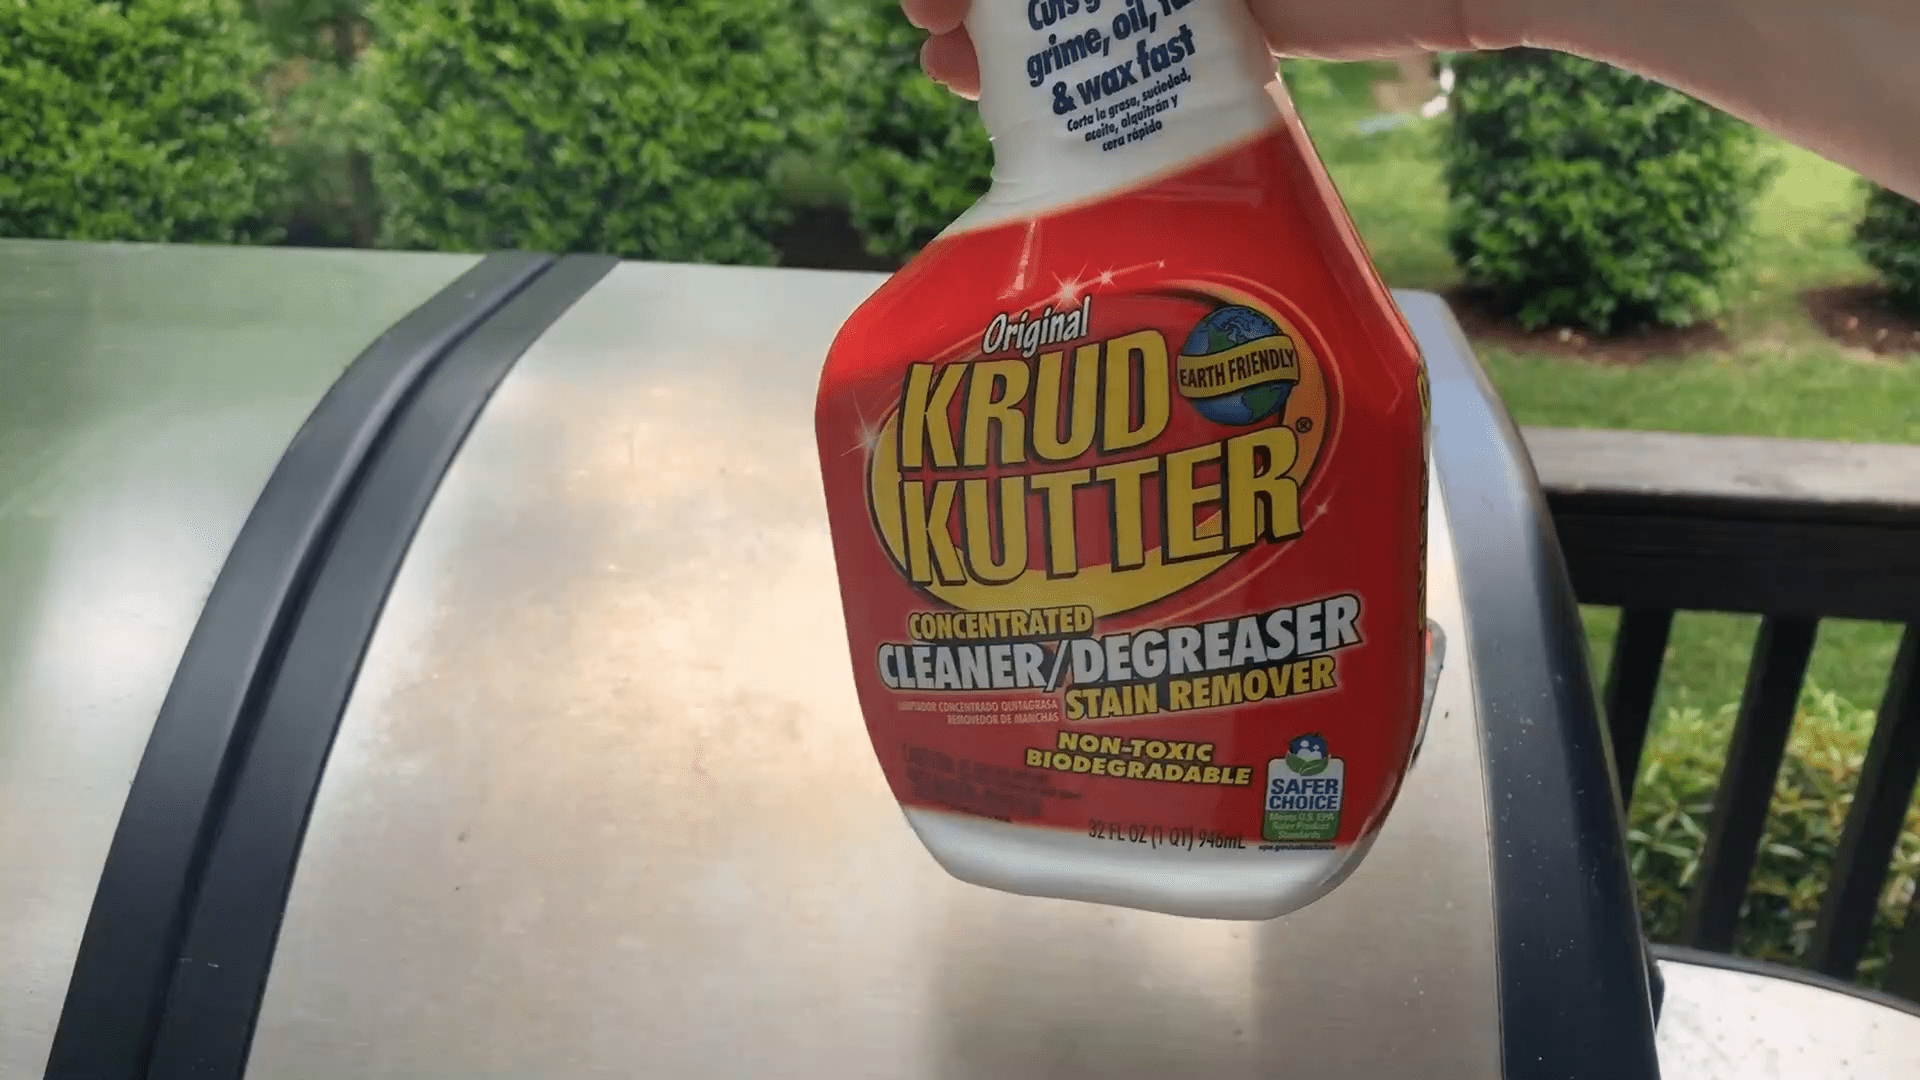 Krud Kutter Product Review, Angela Brown Holding Krud Kutter in Front of Grill